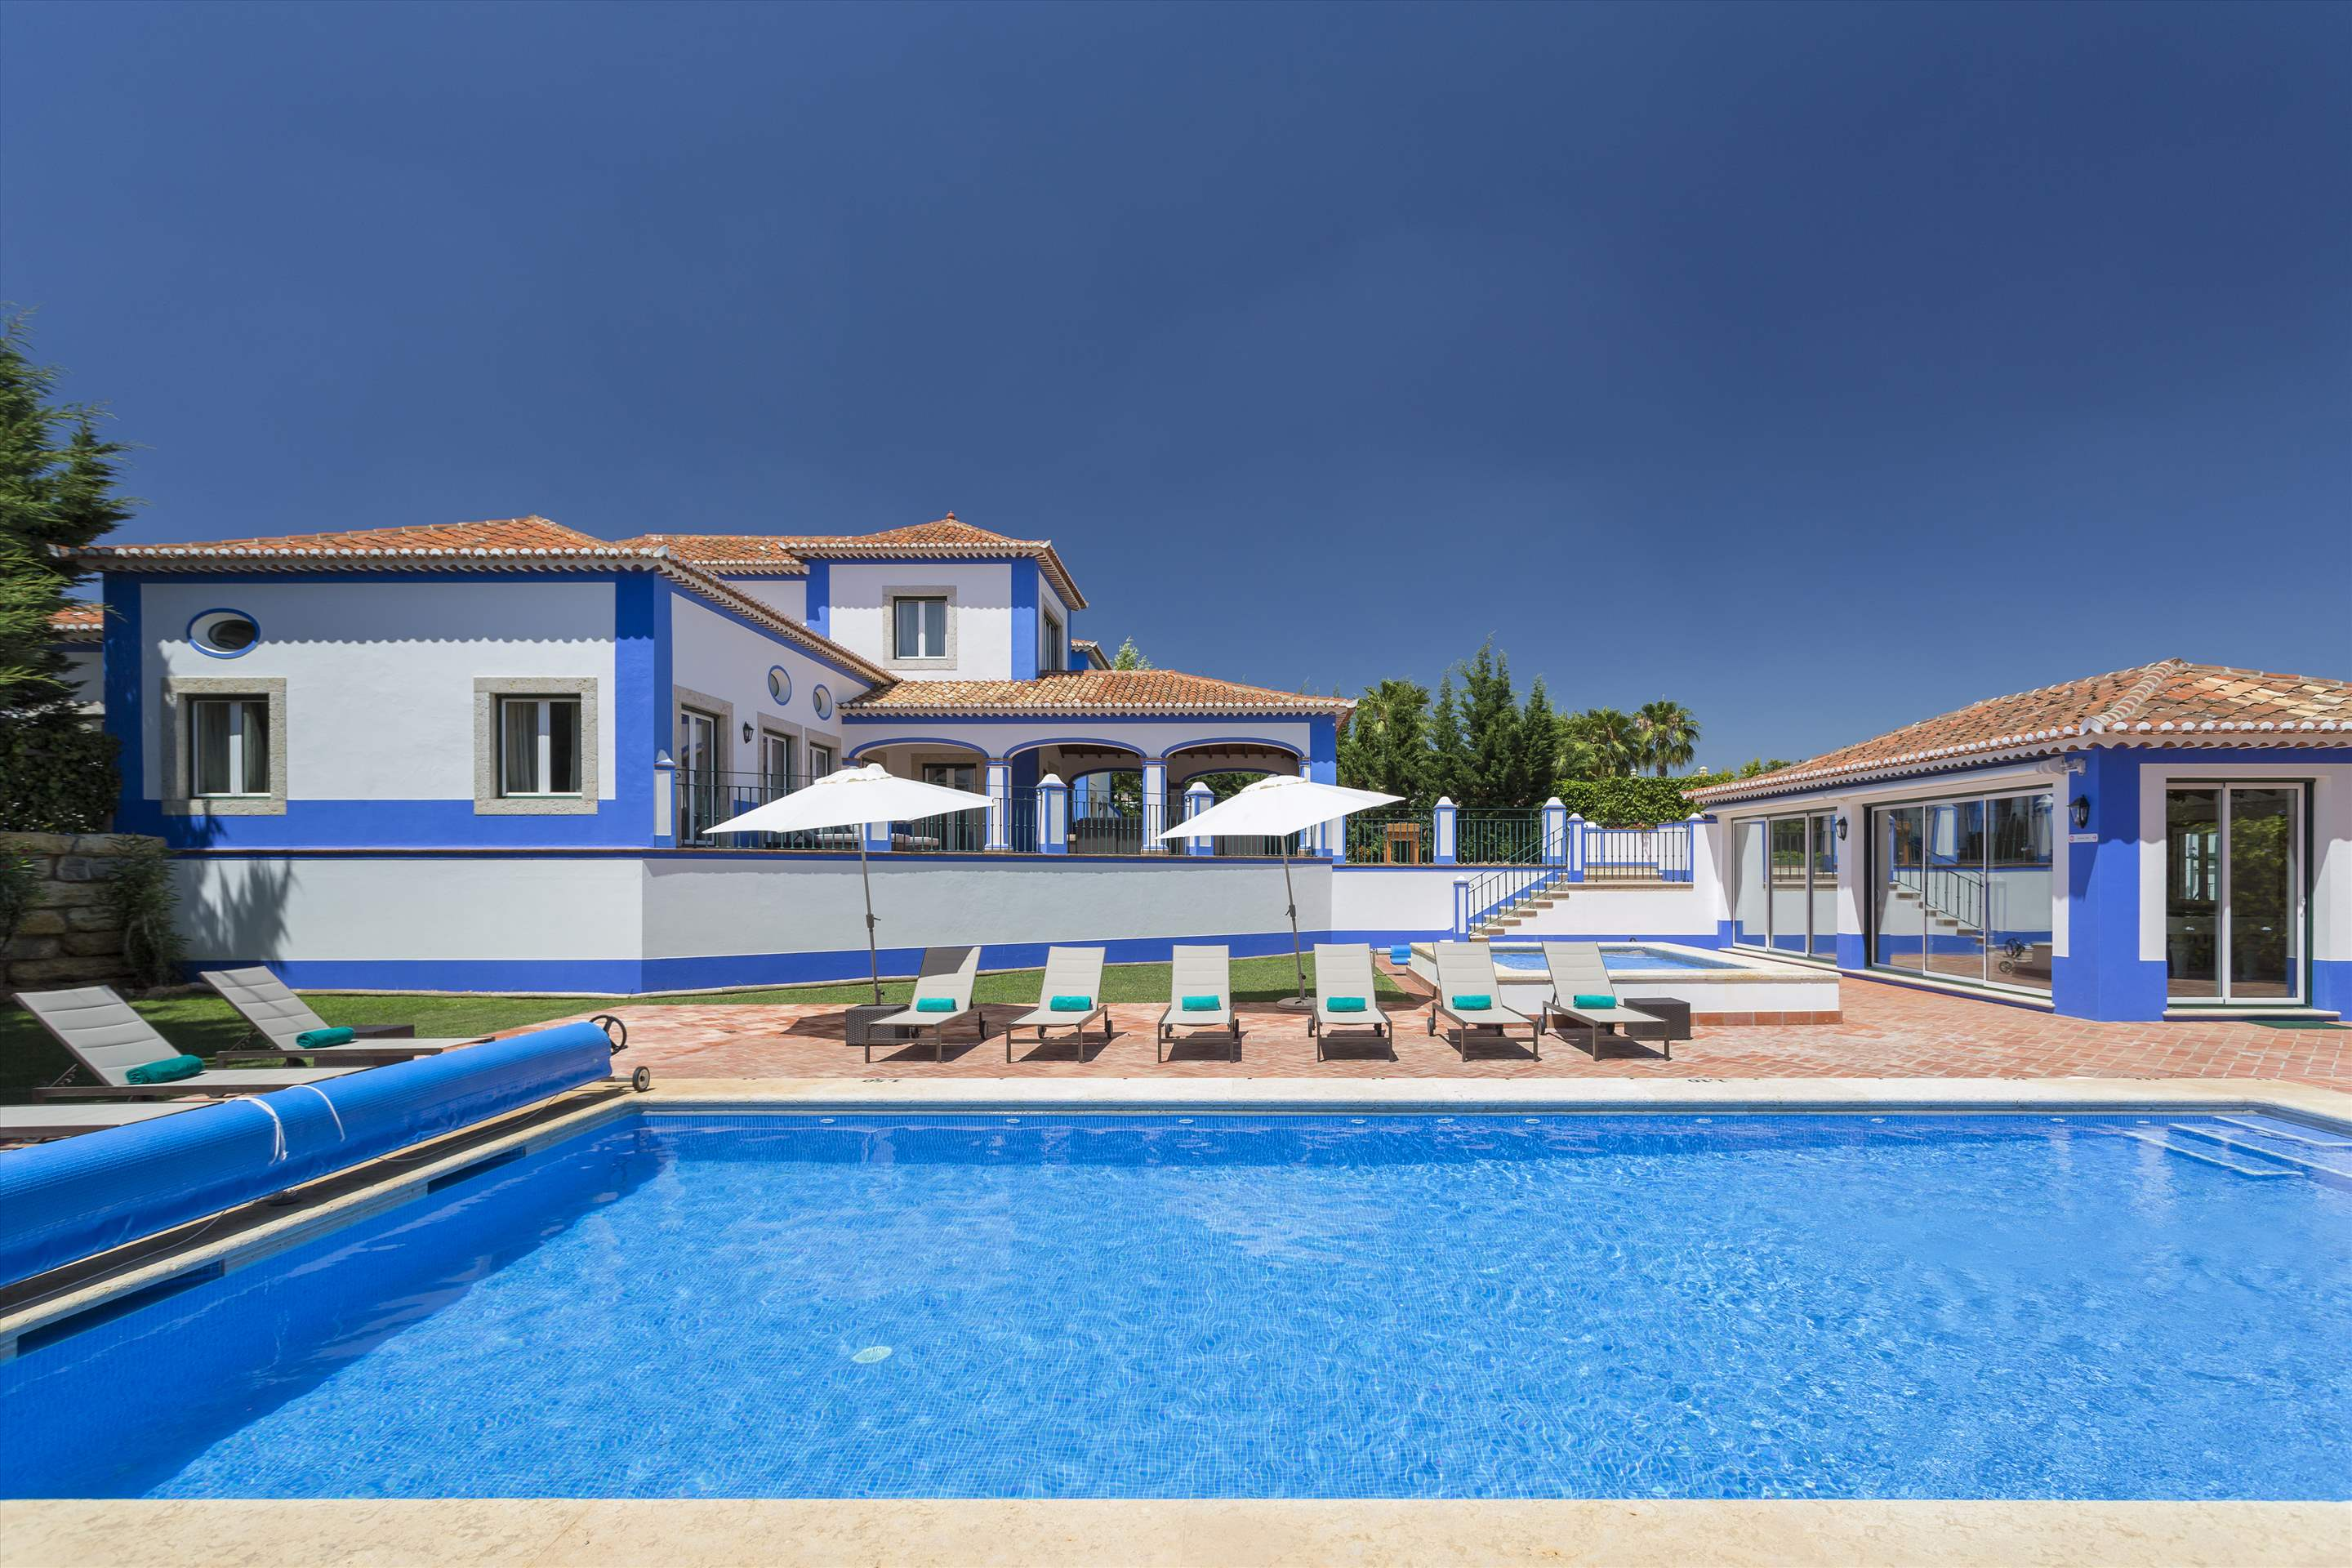 Villa Milho, Three Bedroom Rate, 3 bedroom villa in Vilamoura Area, Algarve Photo #20